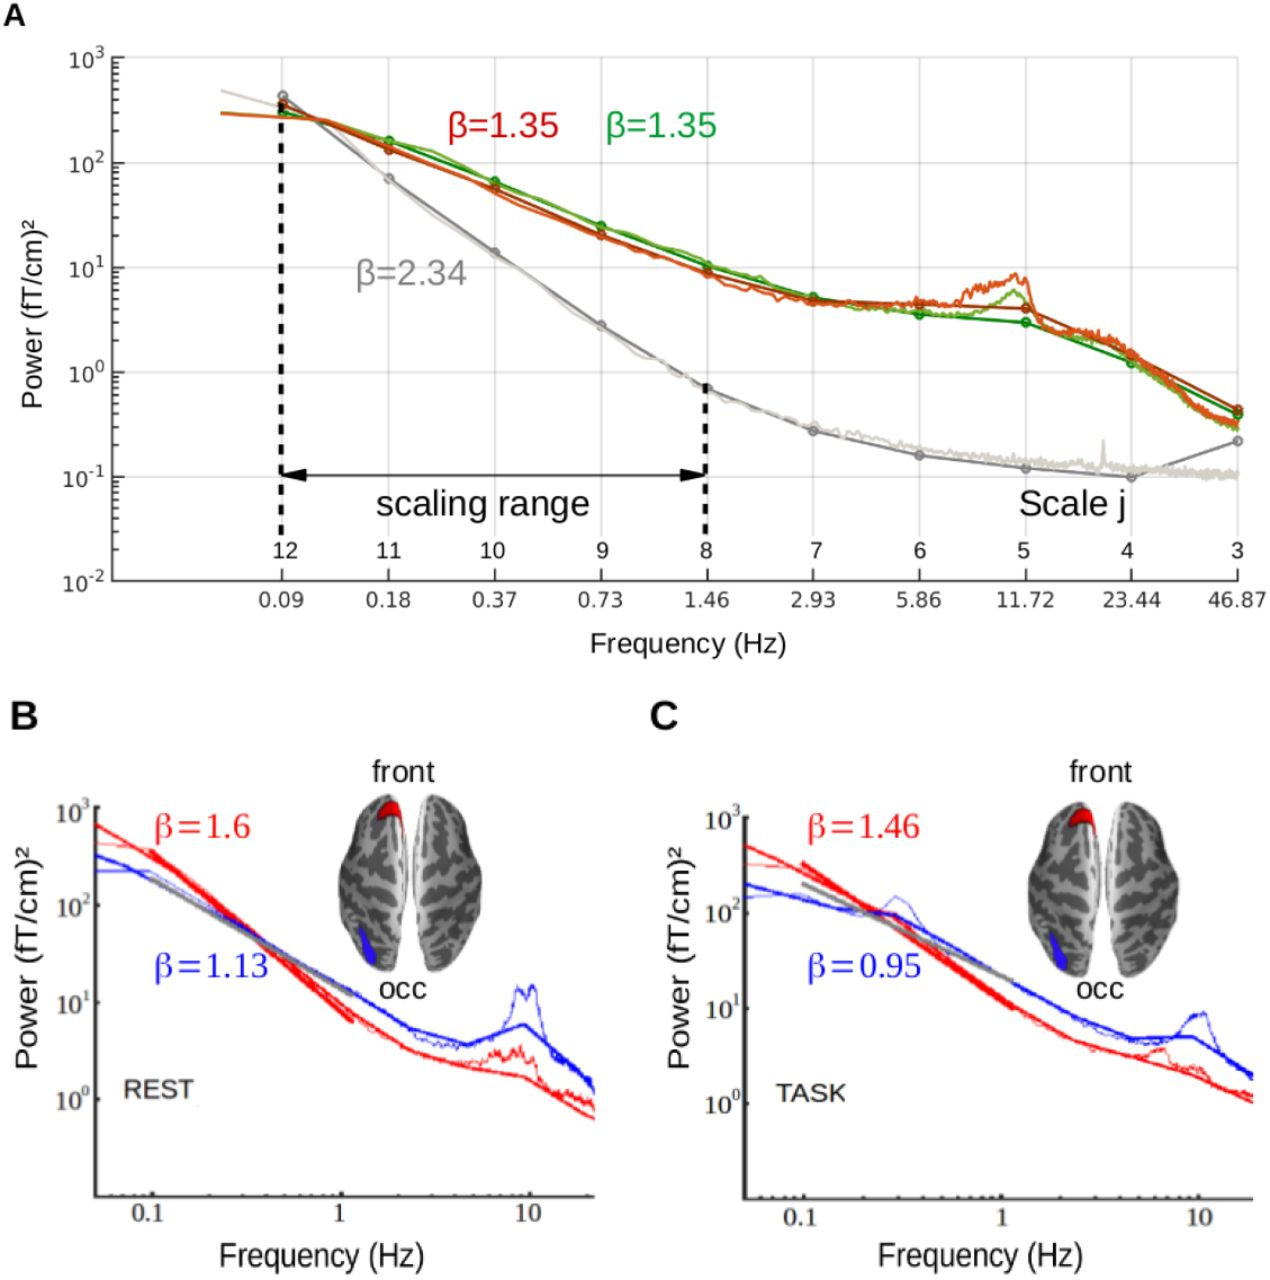 Self-similarity and multifractality in human brain activity